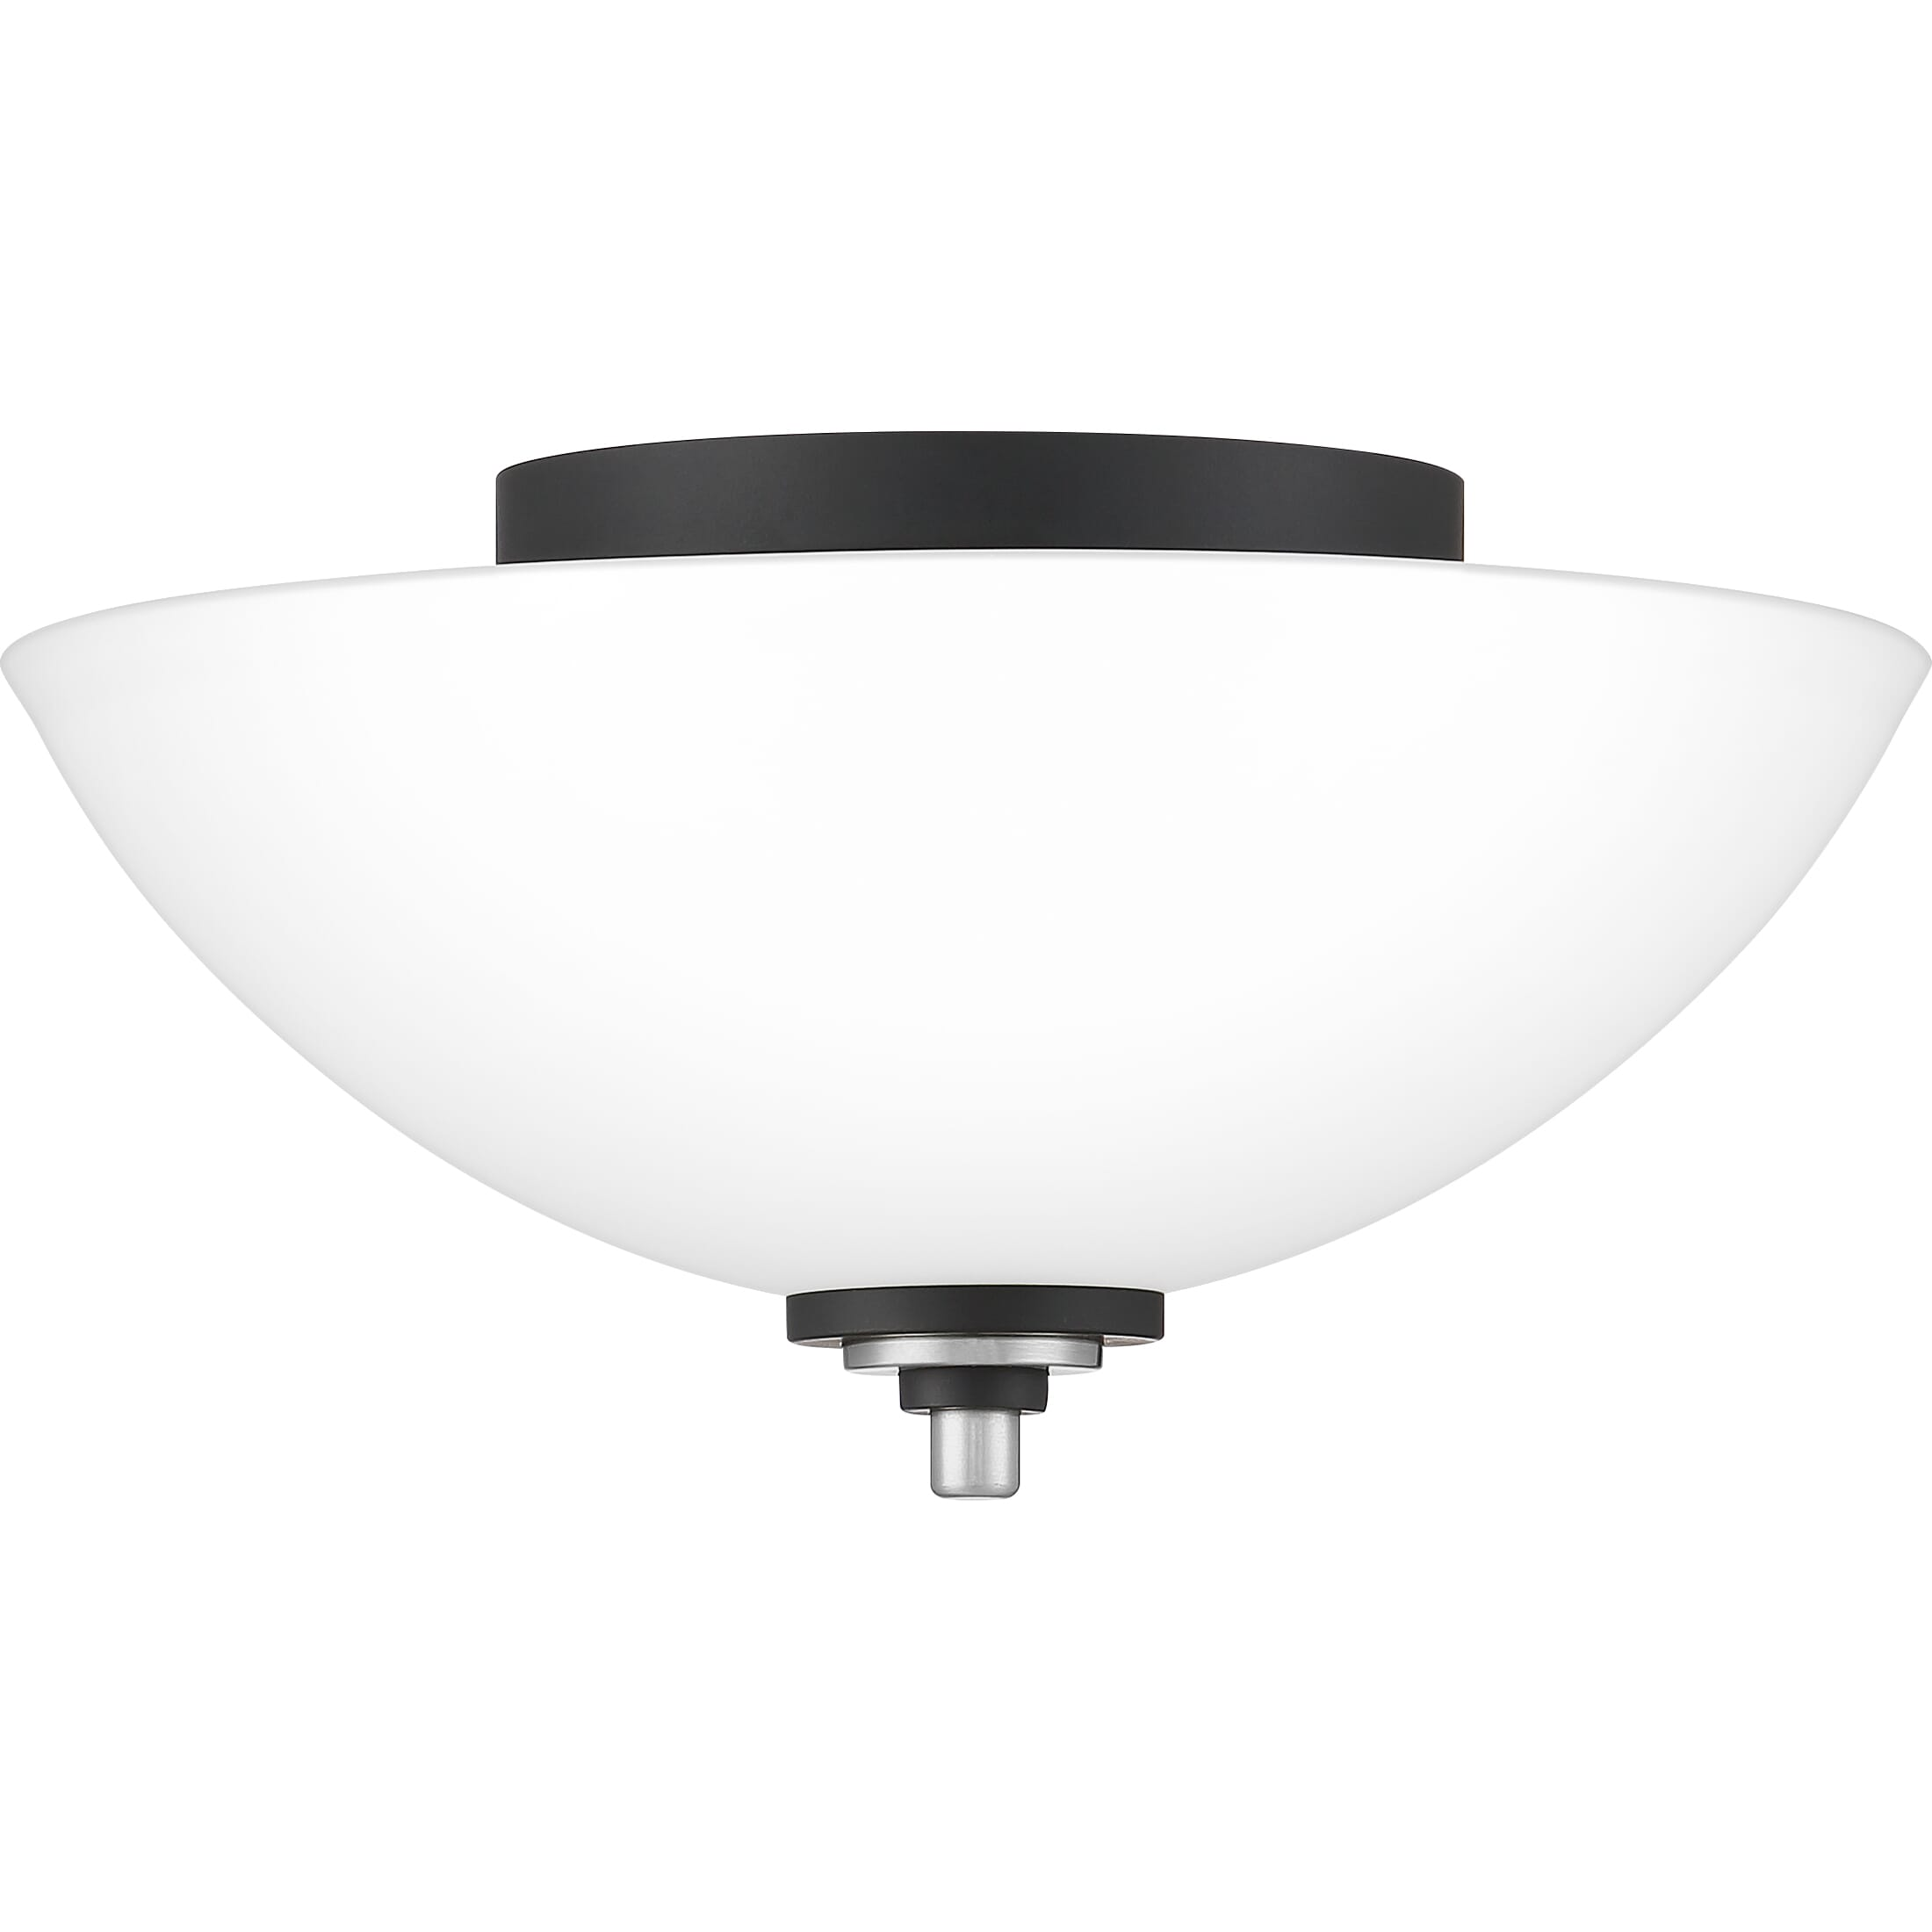 Quoizel Conrad 2 Light 13 Ceiling Light In Brushed Nickel